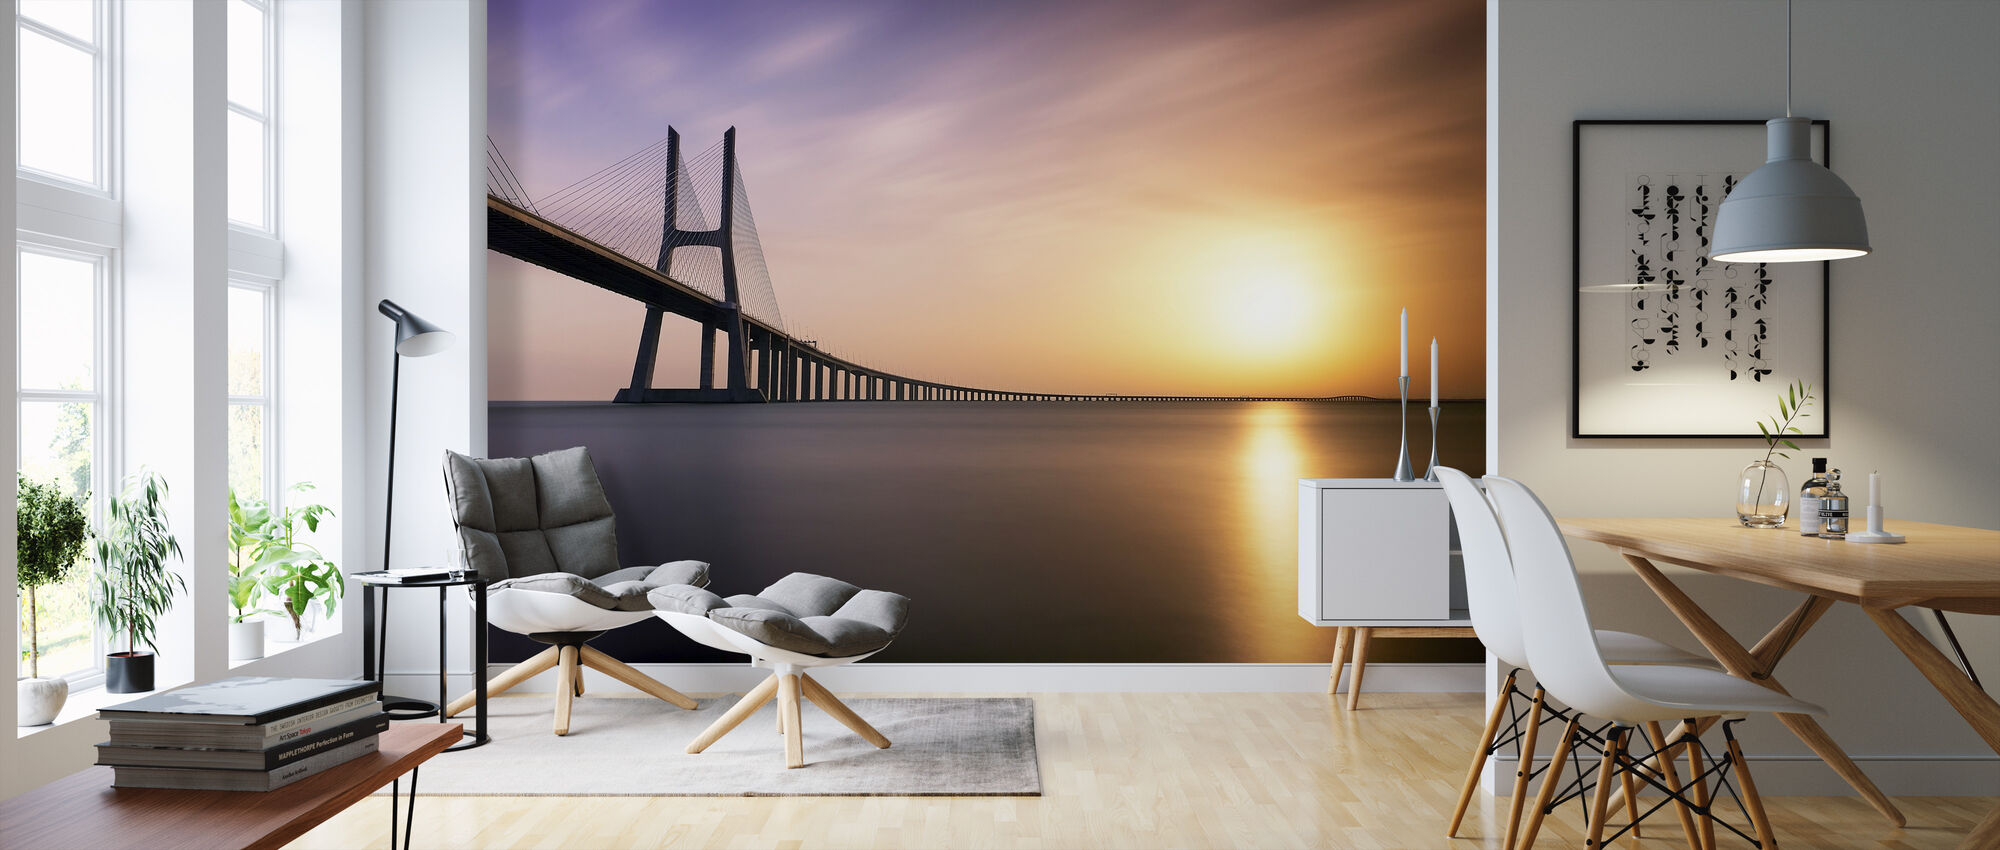 Sunrise by the Bridge - Wallpaper - Living Room